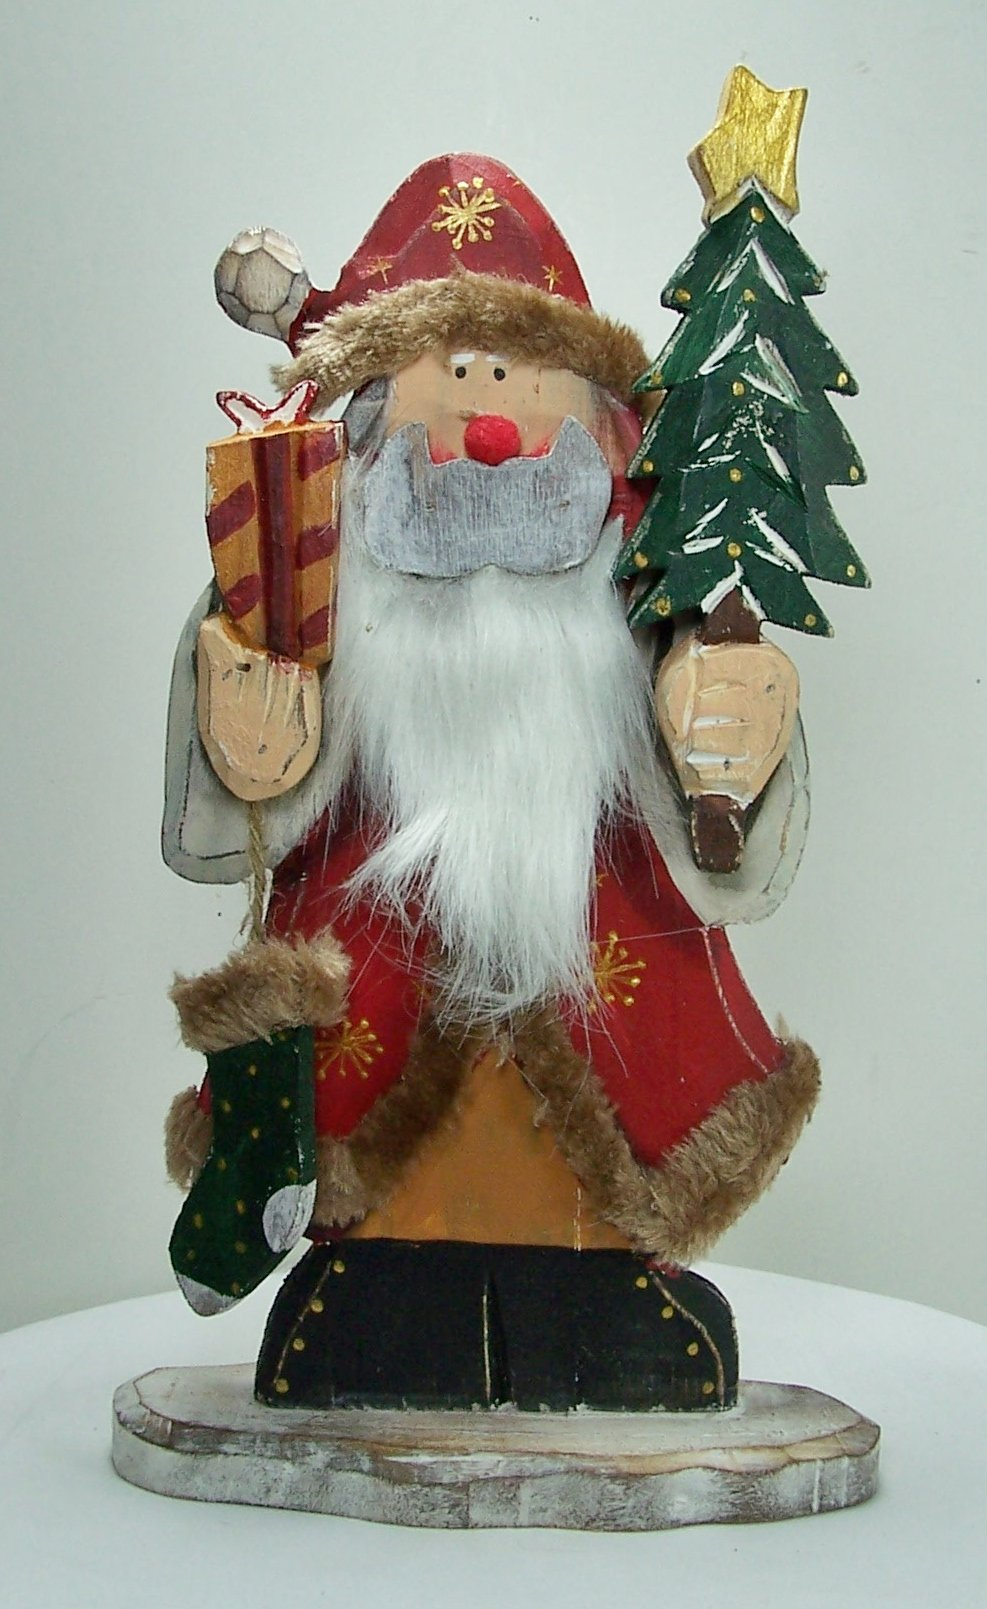 12'' Tall Rustic Wood Cut Out Santa Claus with Christmas Tree & Stocking